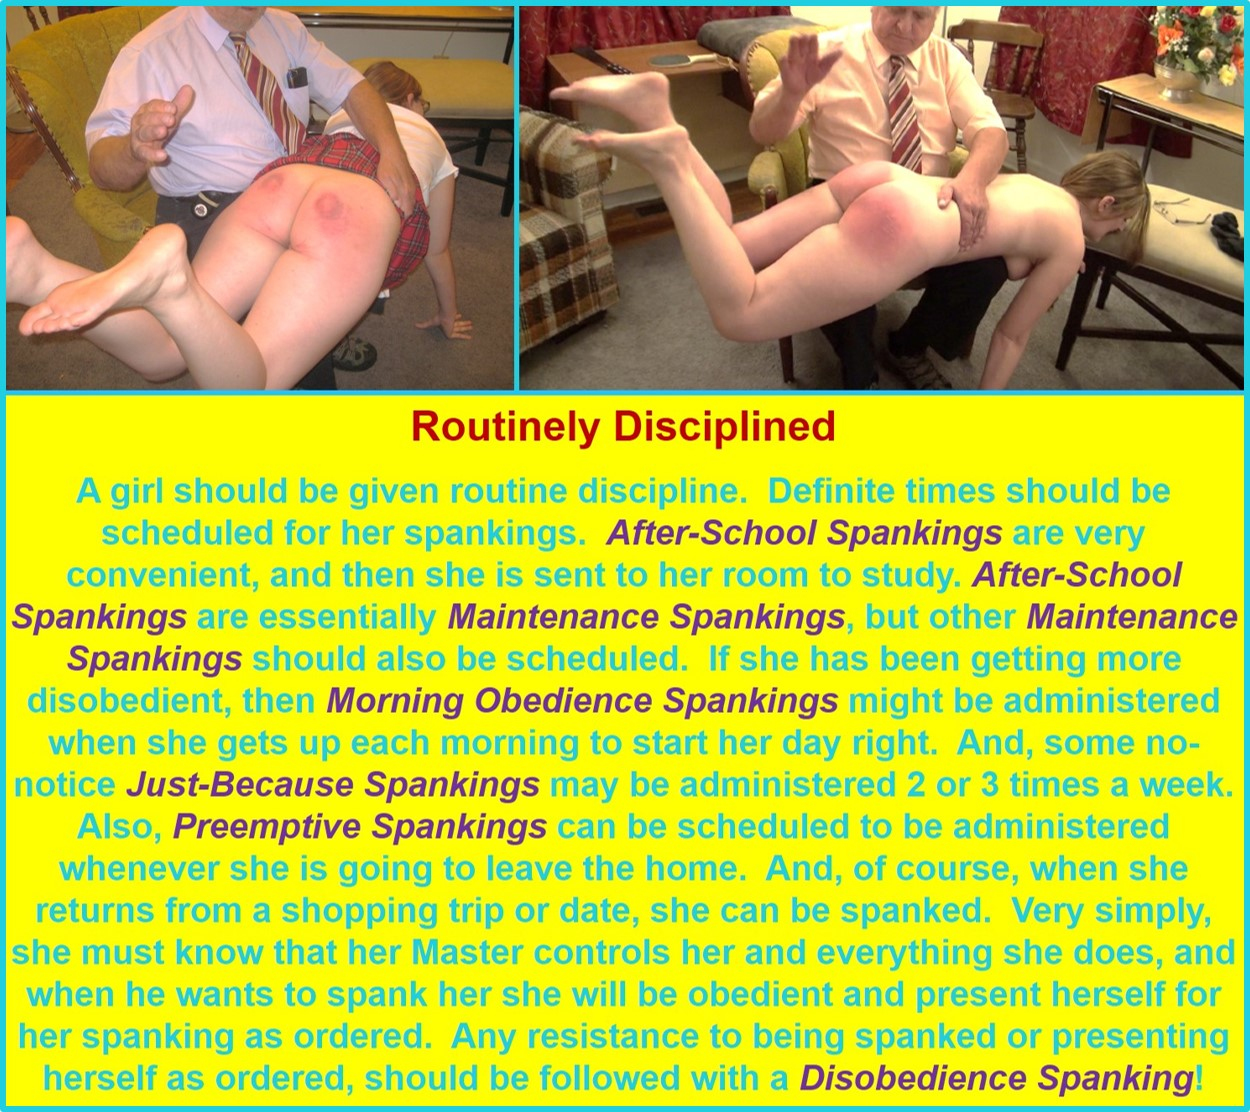 Request for Spankings, 7